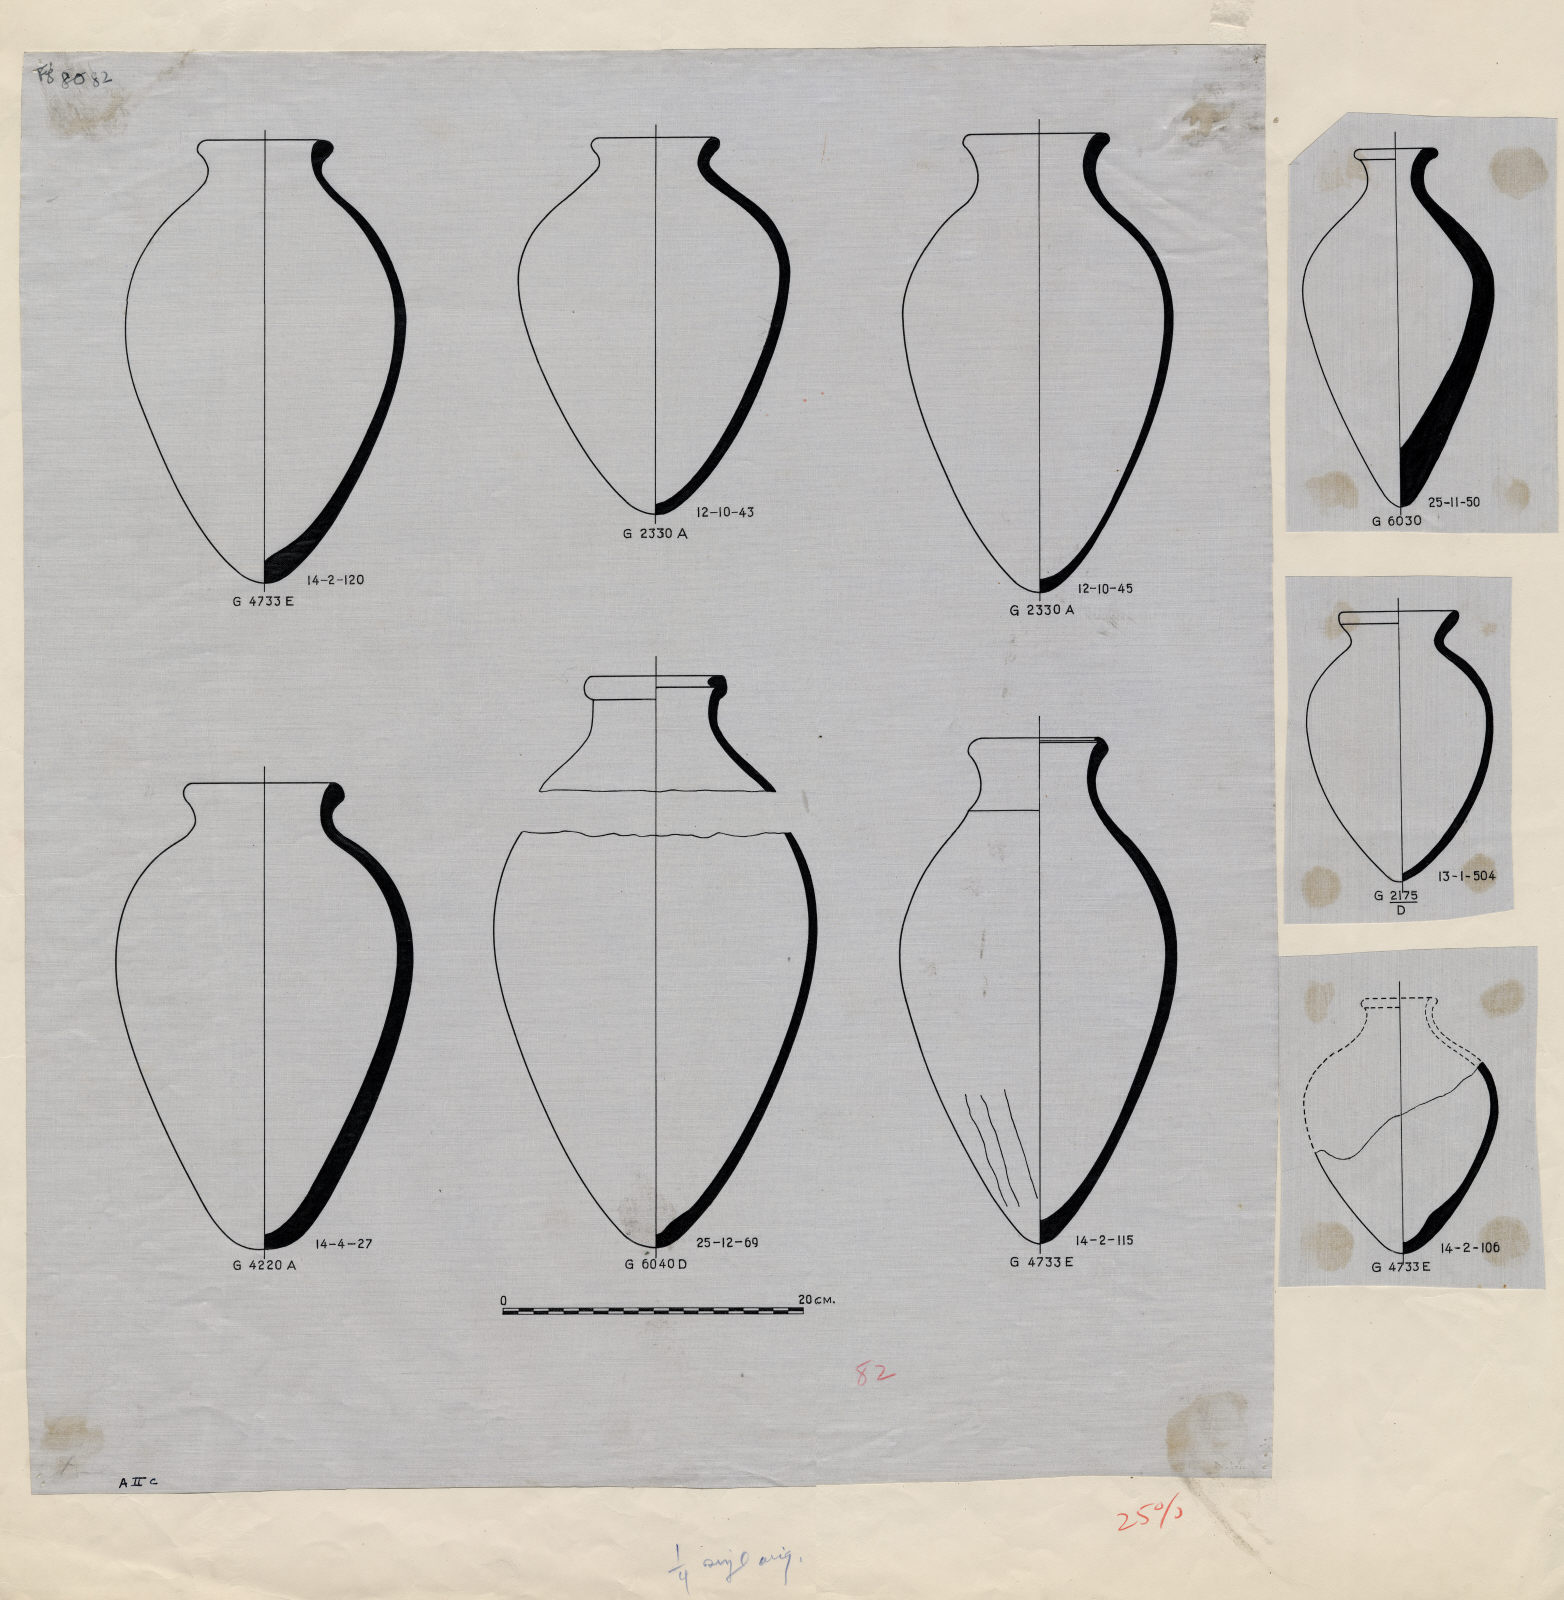 Drawings: Pottery, jars from G 2175, Shaft D; G 2330 (= G 5380), Shaft A; G 4220, Shaft A; G 4733, Shaft E; G 6030; G 6040, Shaft D;